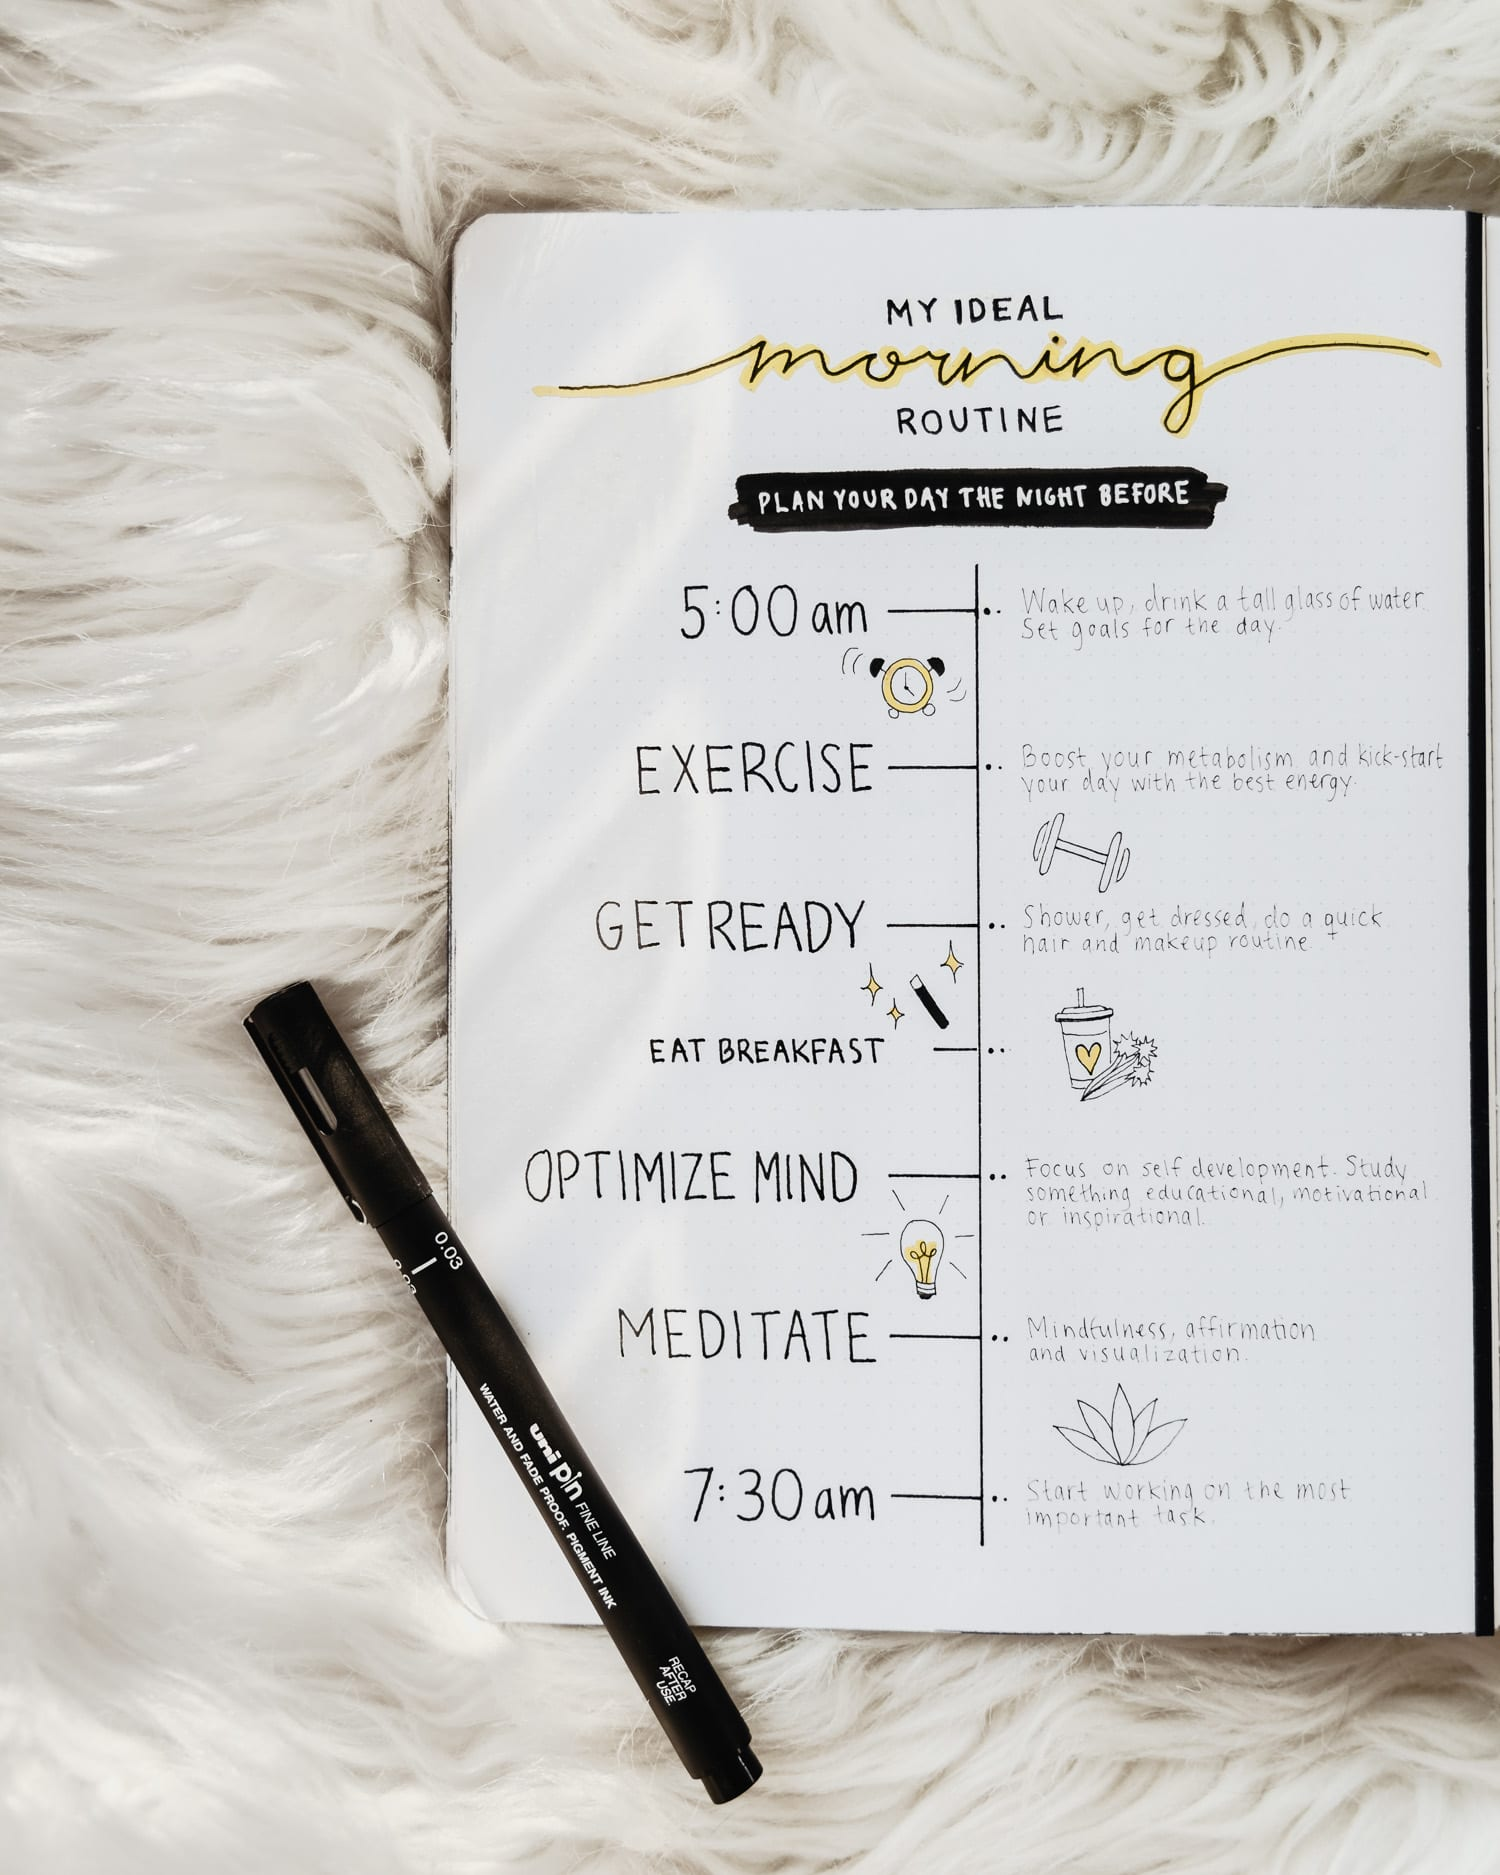 Bullet Journal - My Ideal Morning Routine | Collection Idea